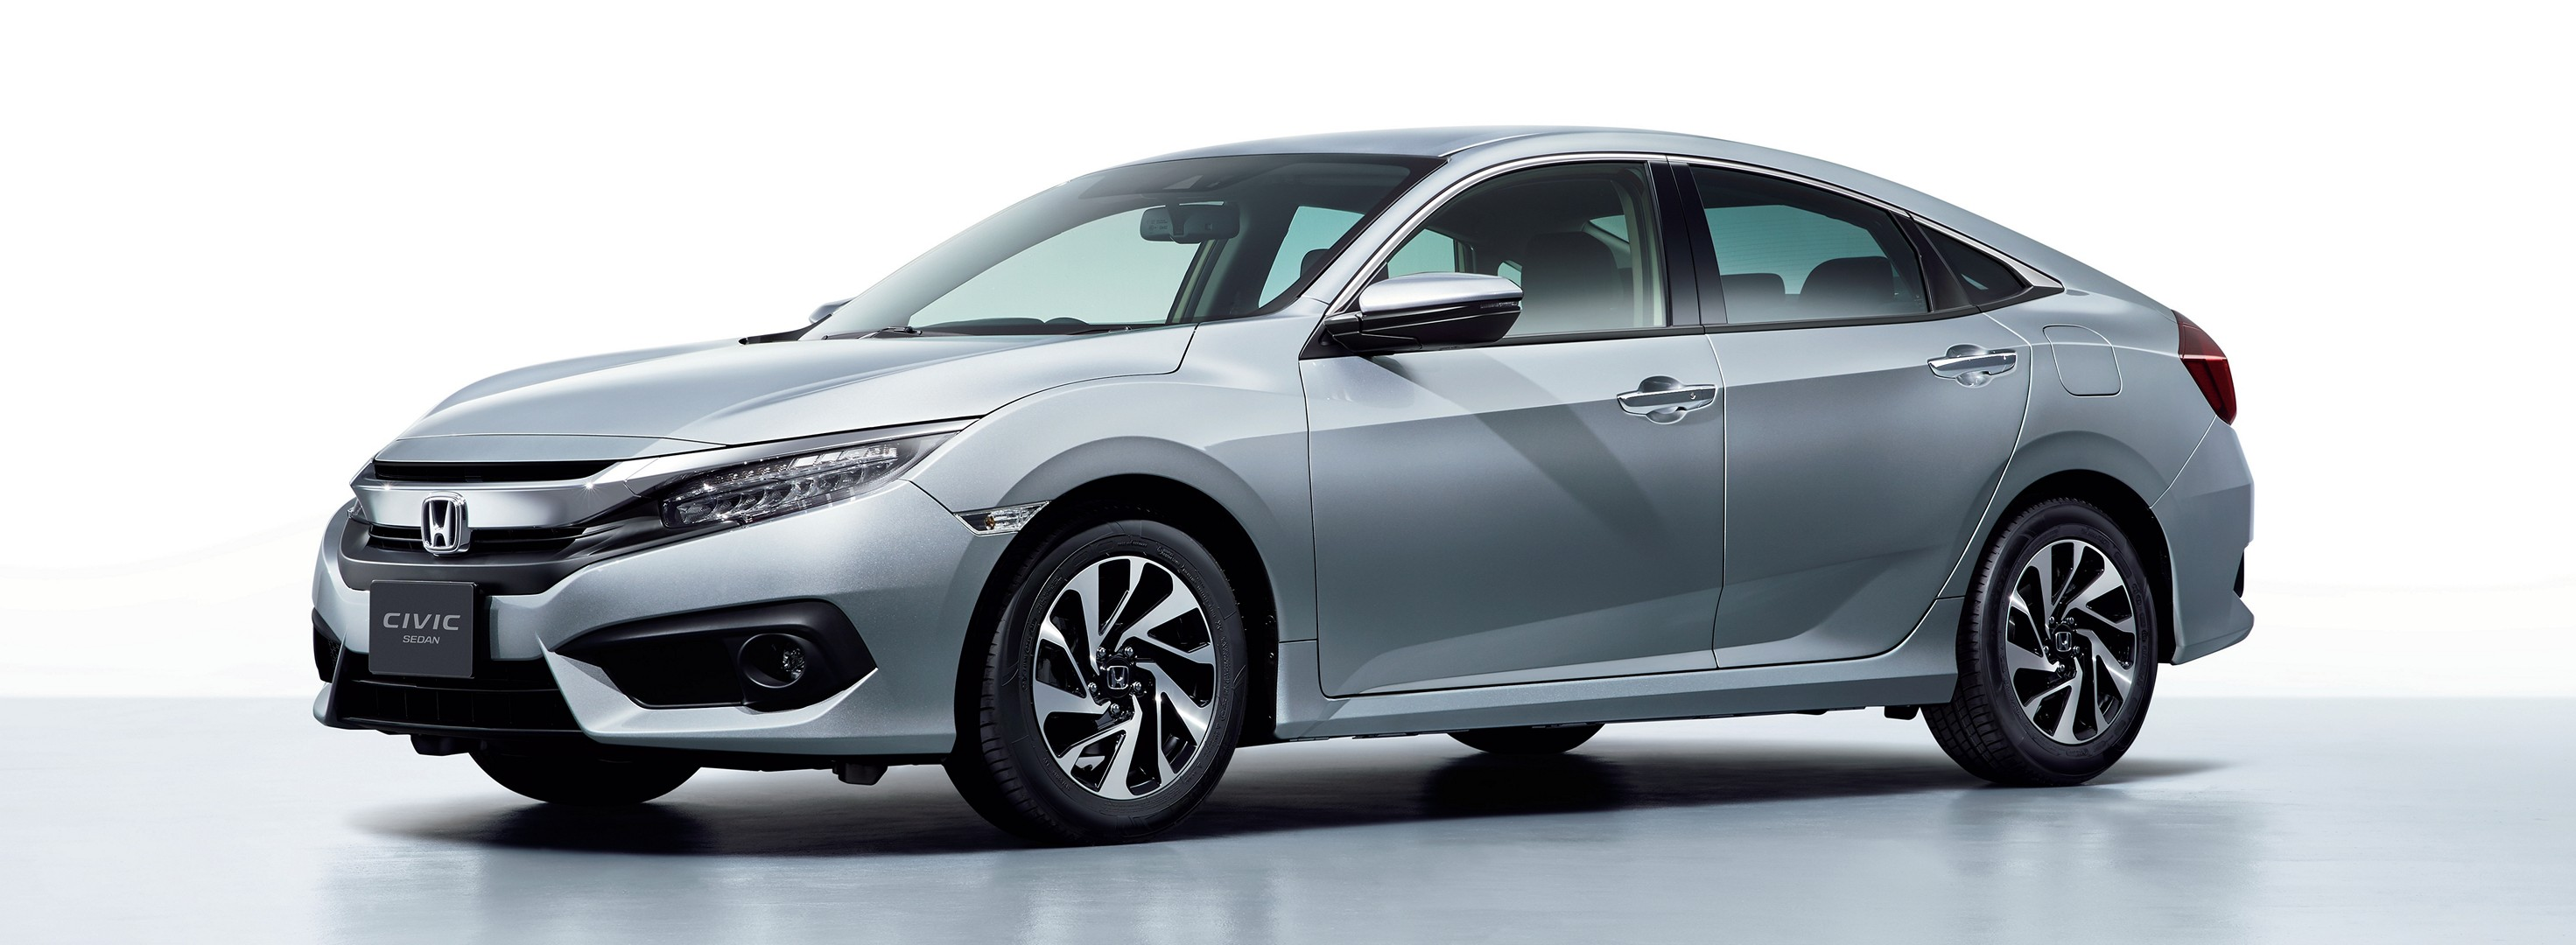 https://s1.cdn.autoevolution.com/images/news/gallery/2017-honda-civic-hatch-and-sedan-launched-in-japan_3.jpg